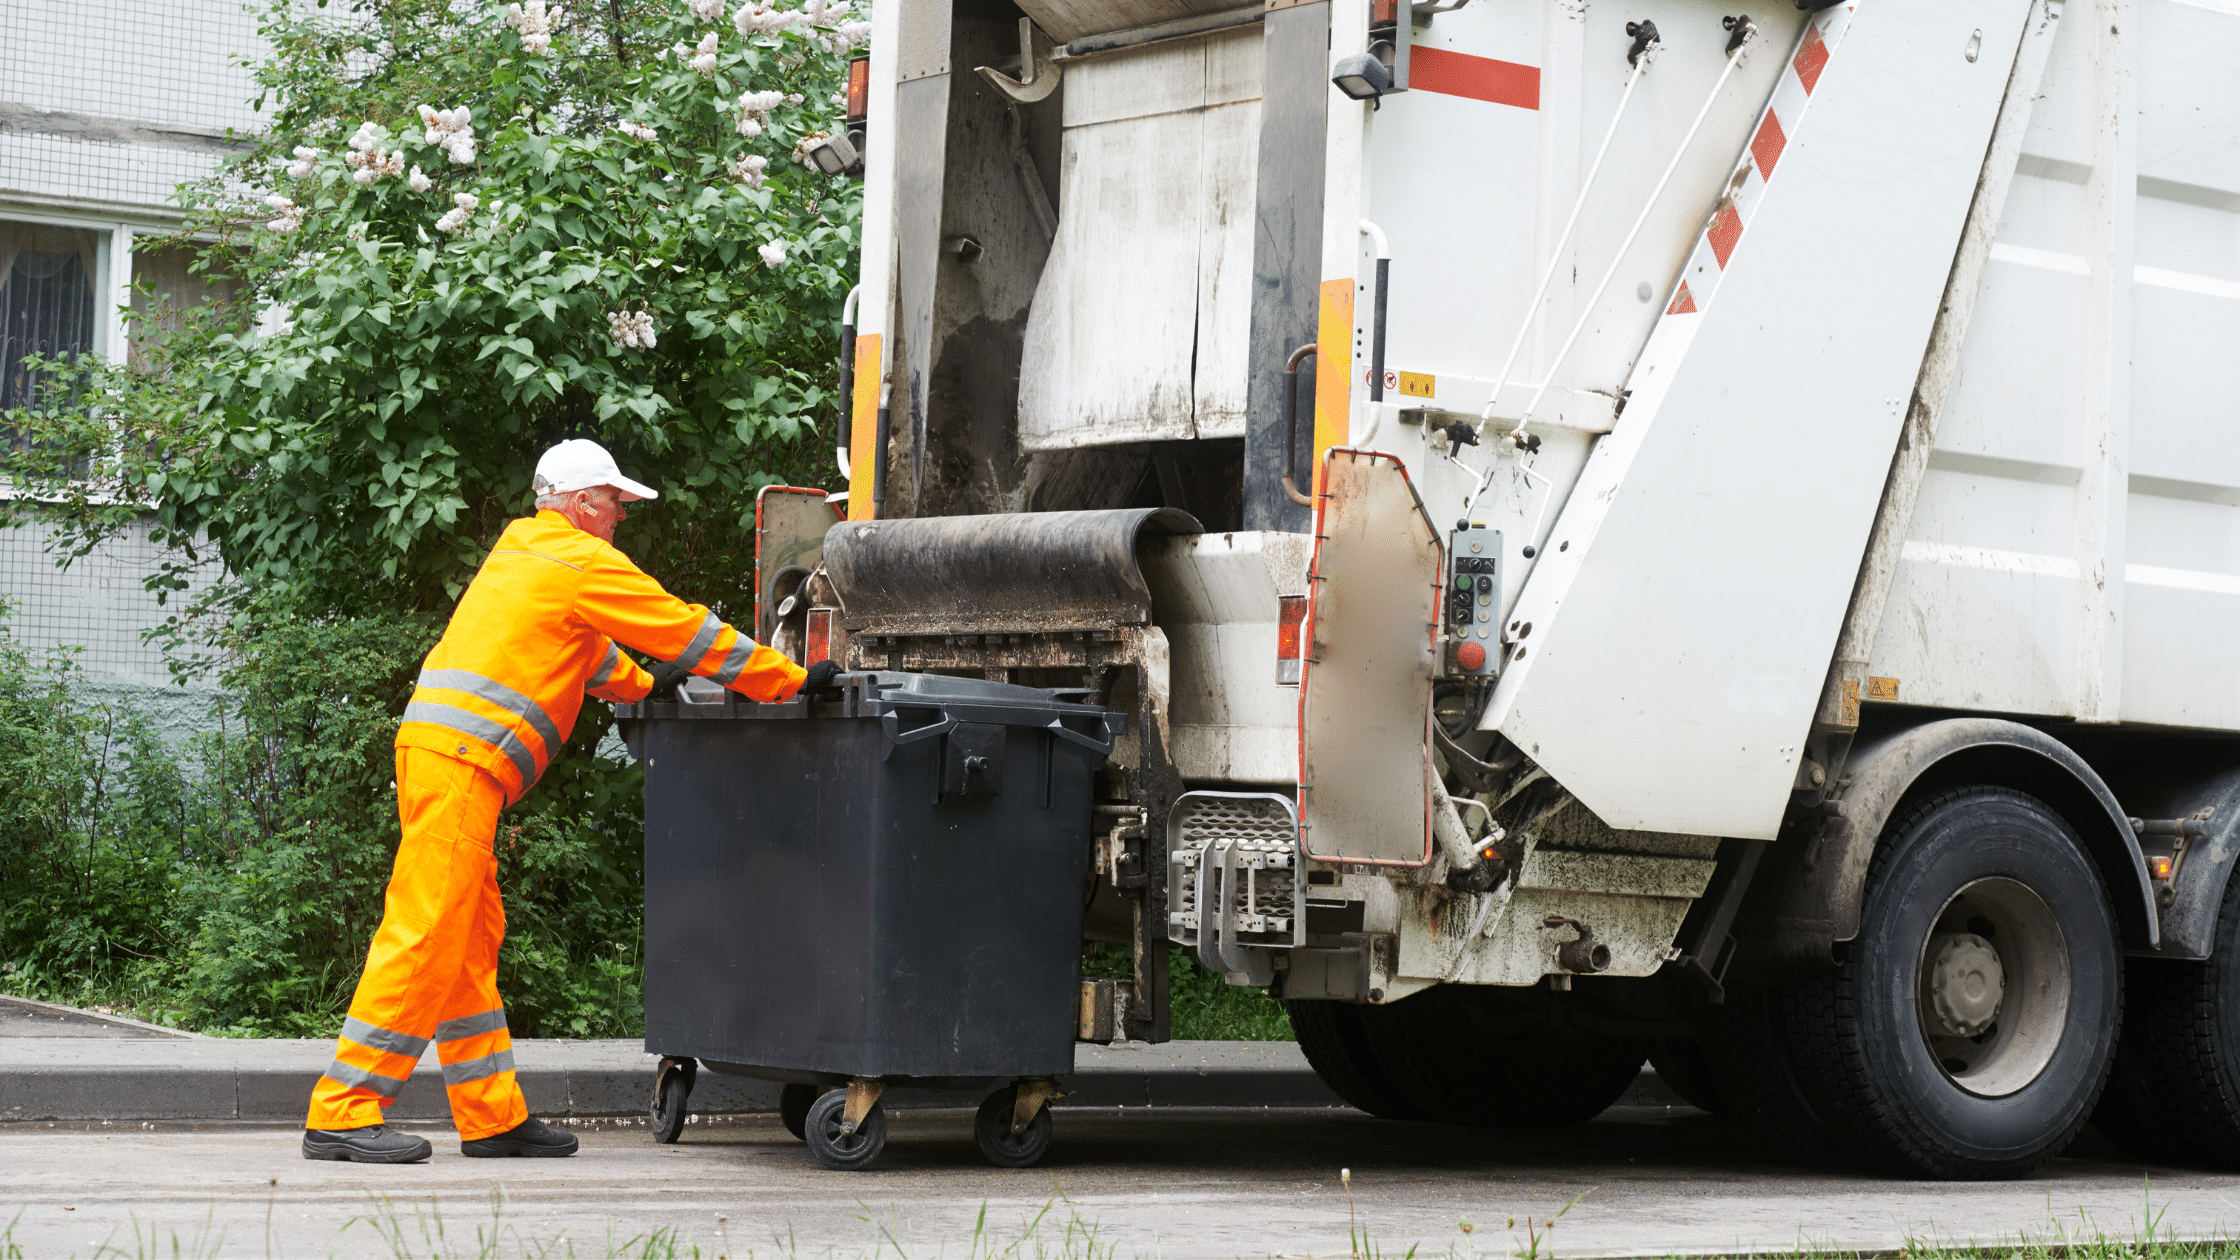 image showing dumpster about to be emptied into packer garbage truck